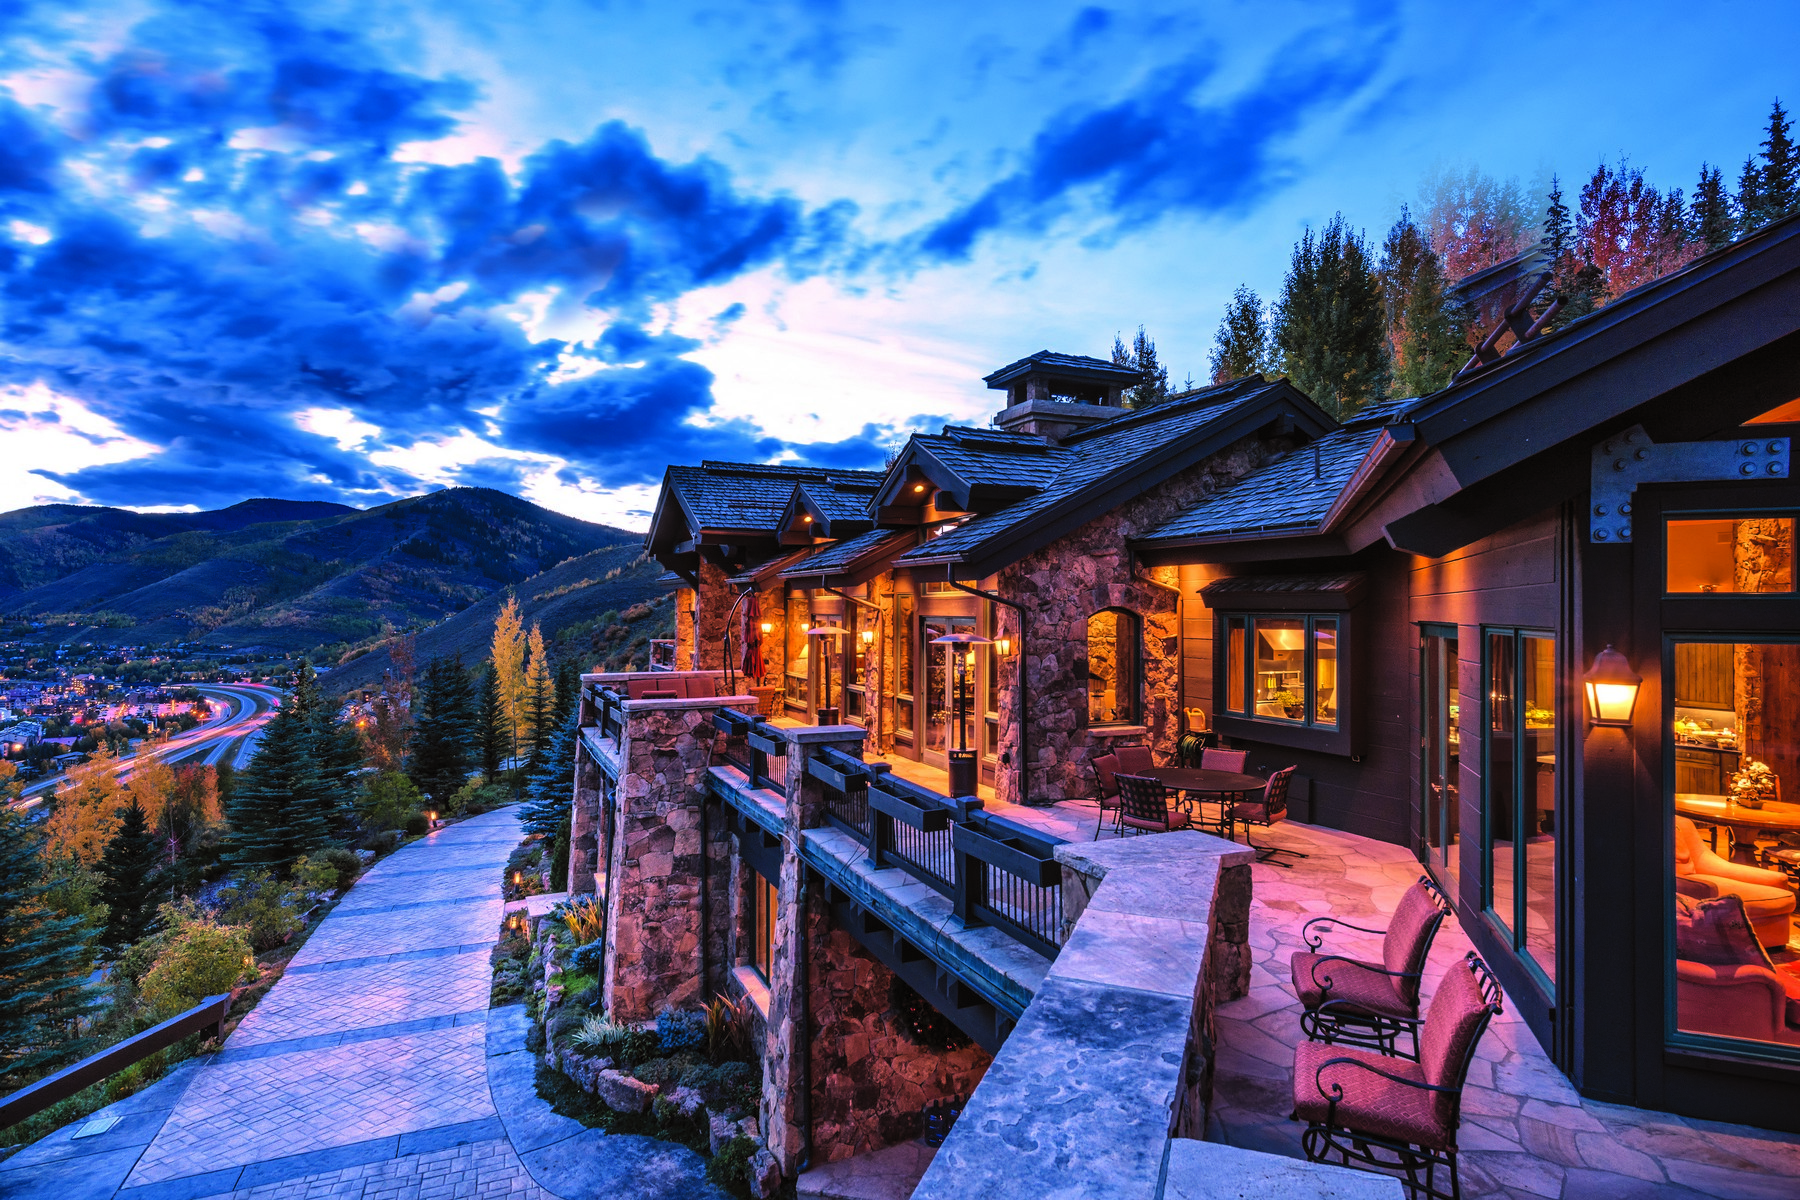 Single Family Home for Sale at Direct Views of Vail Mountain 971 Spraddle Creek Rd Vail, Colorado 81657 United States